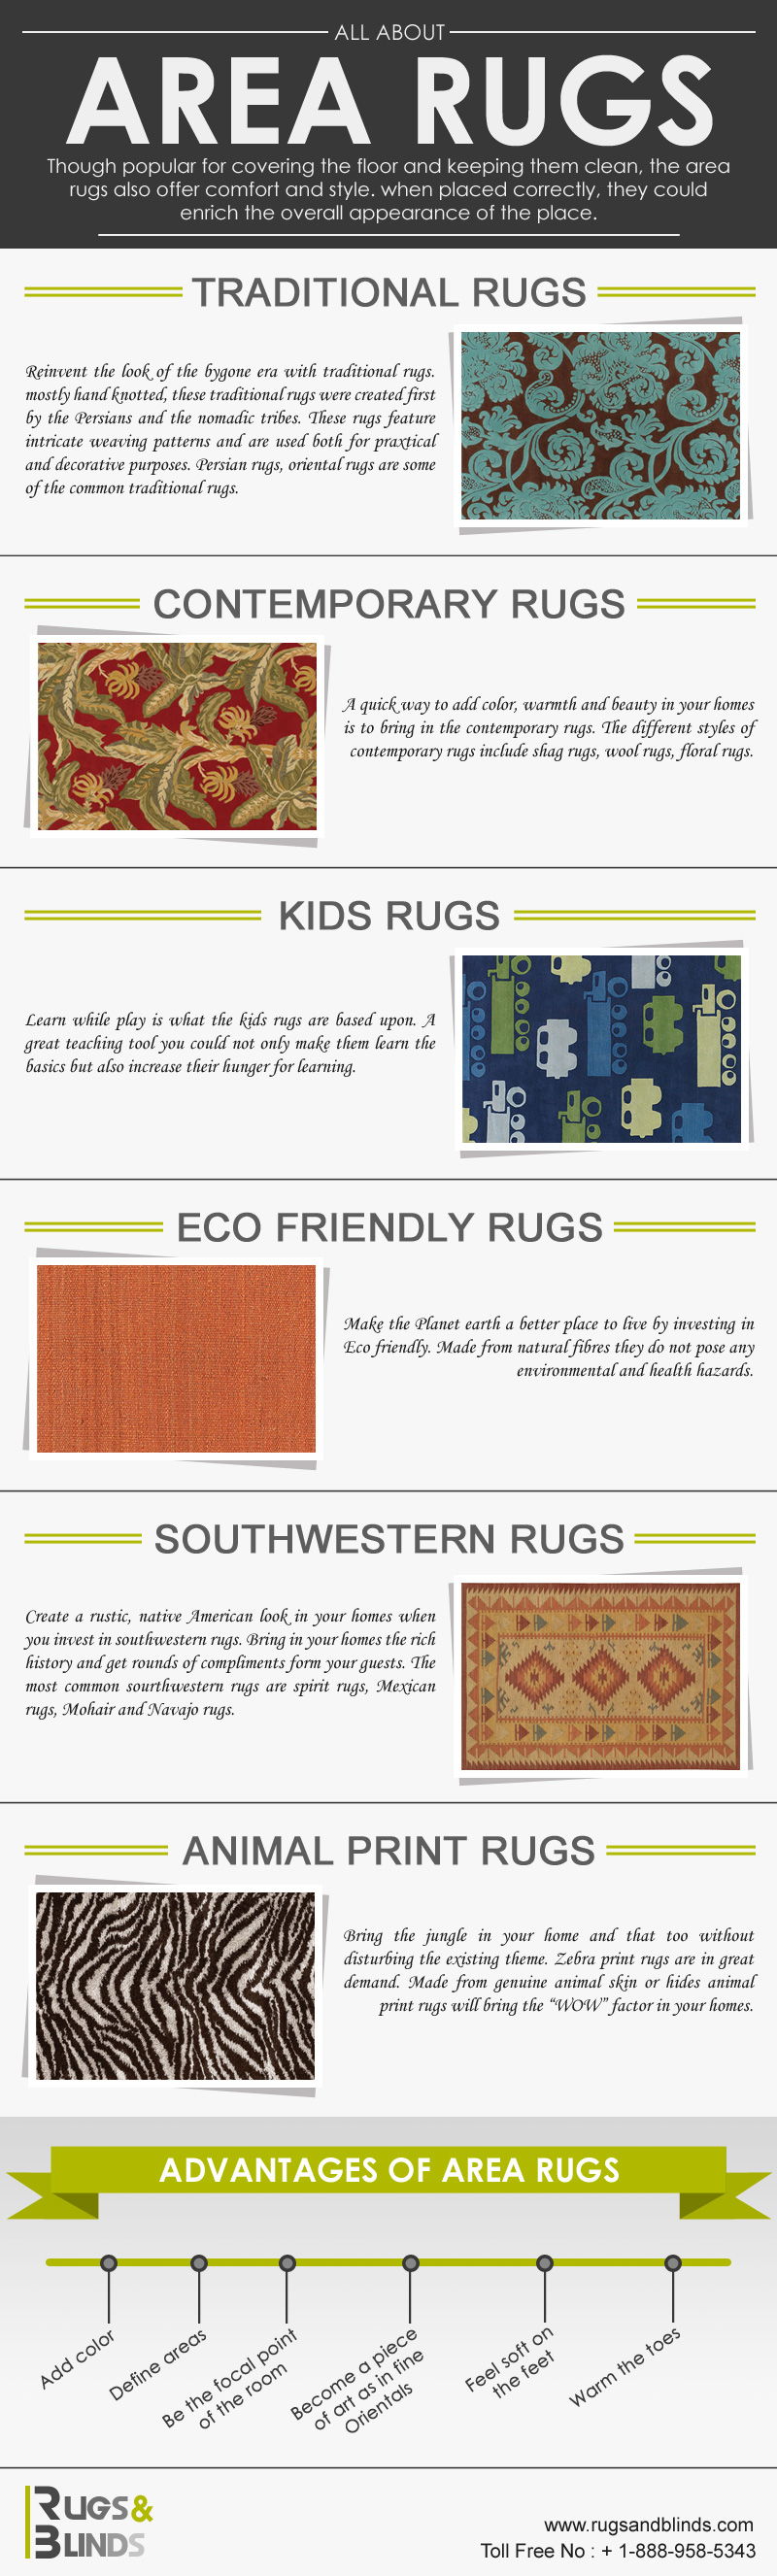 All About Area Rugs